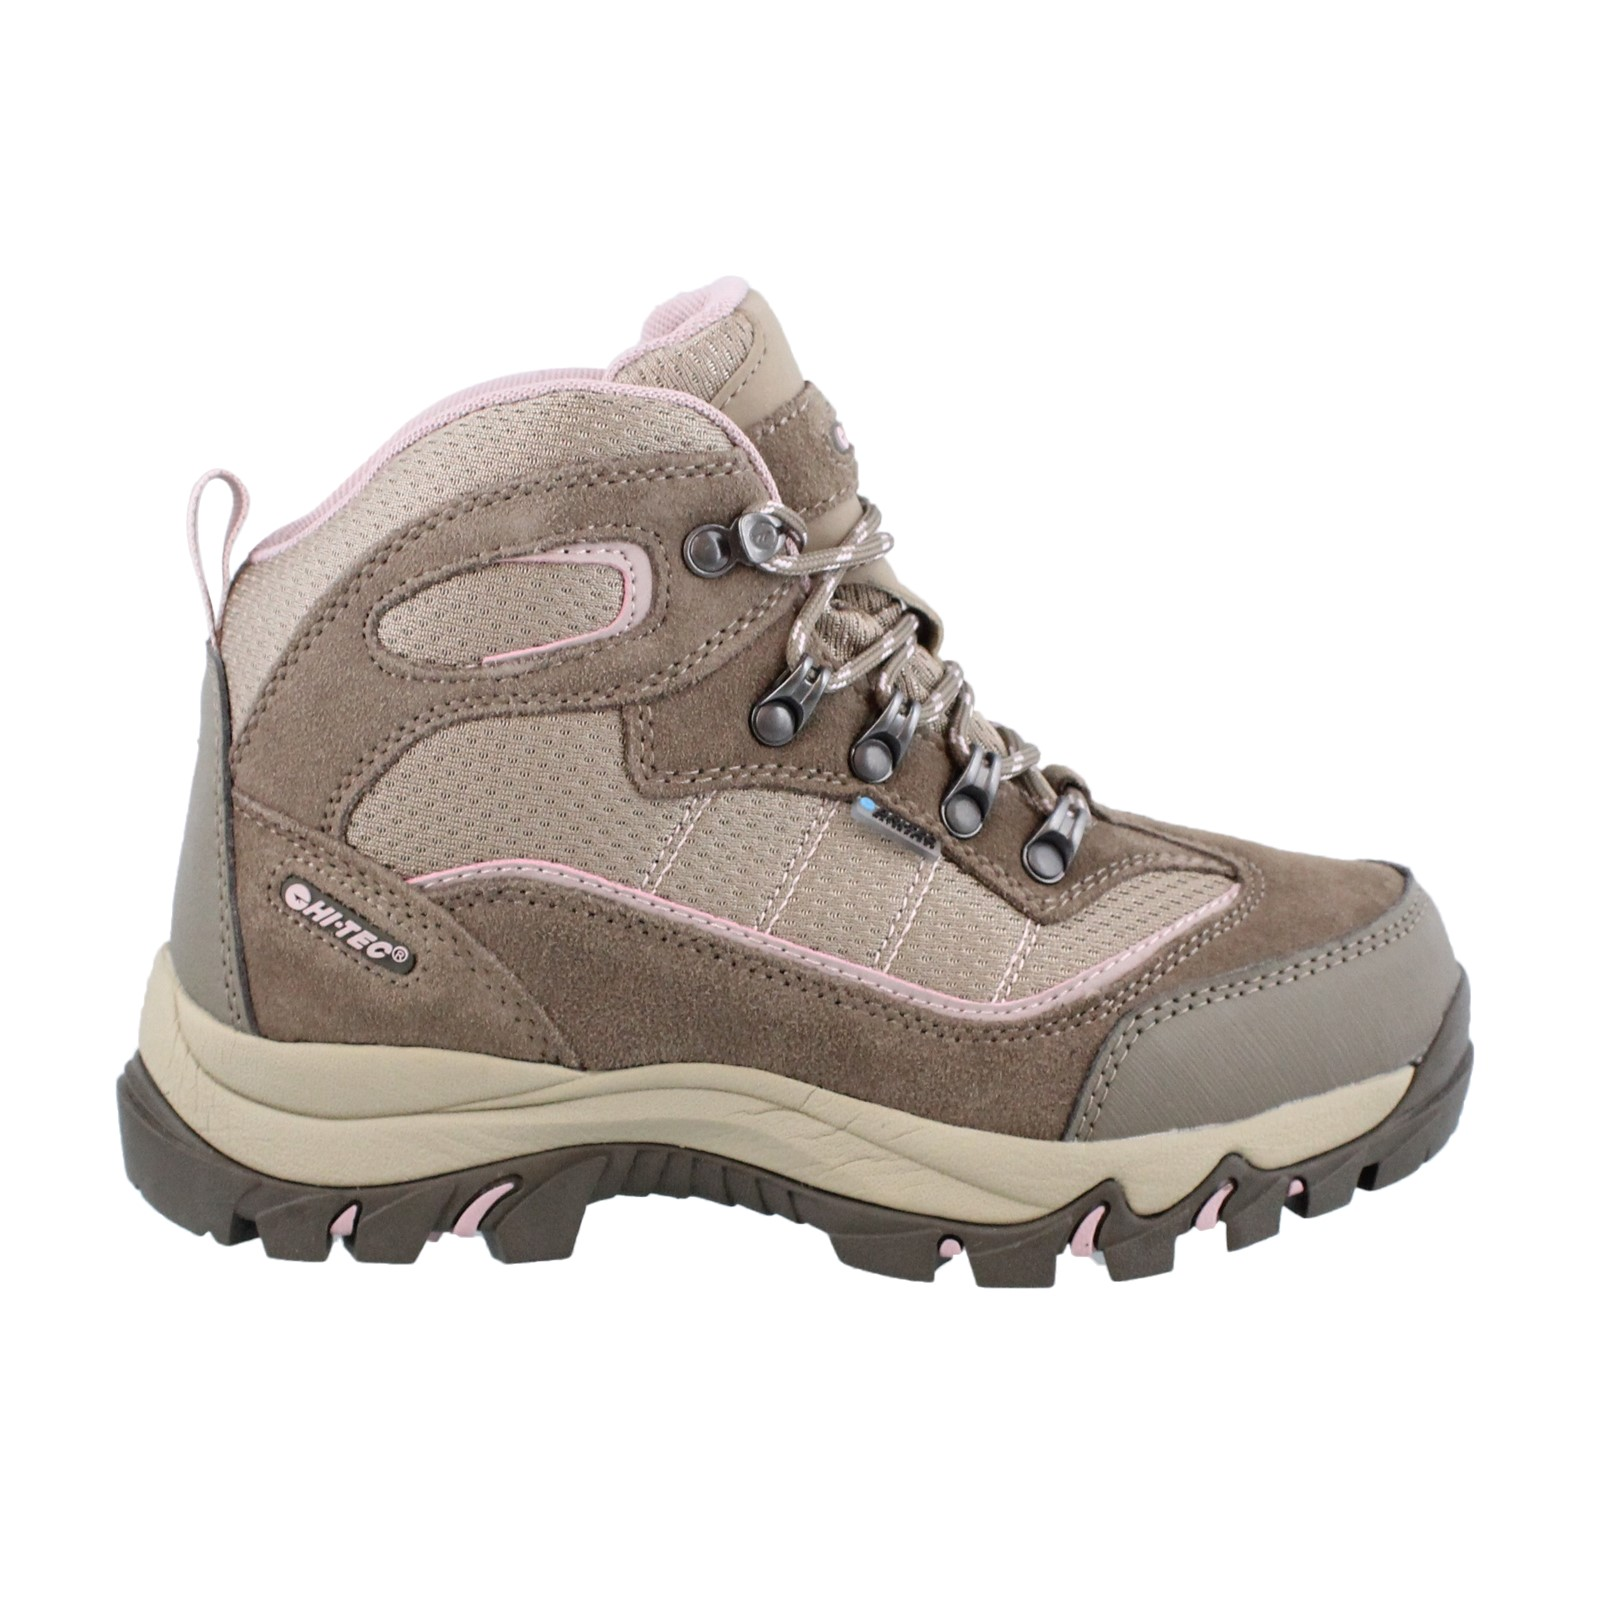 Women's Hi Tec, Skamania Waterproof Hiking Shoe